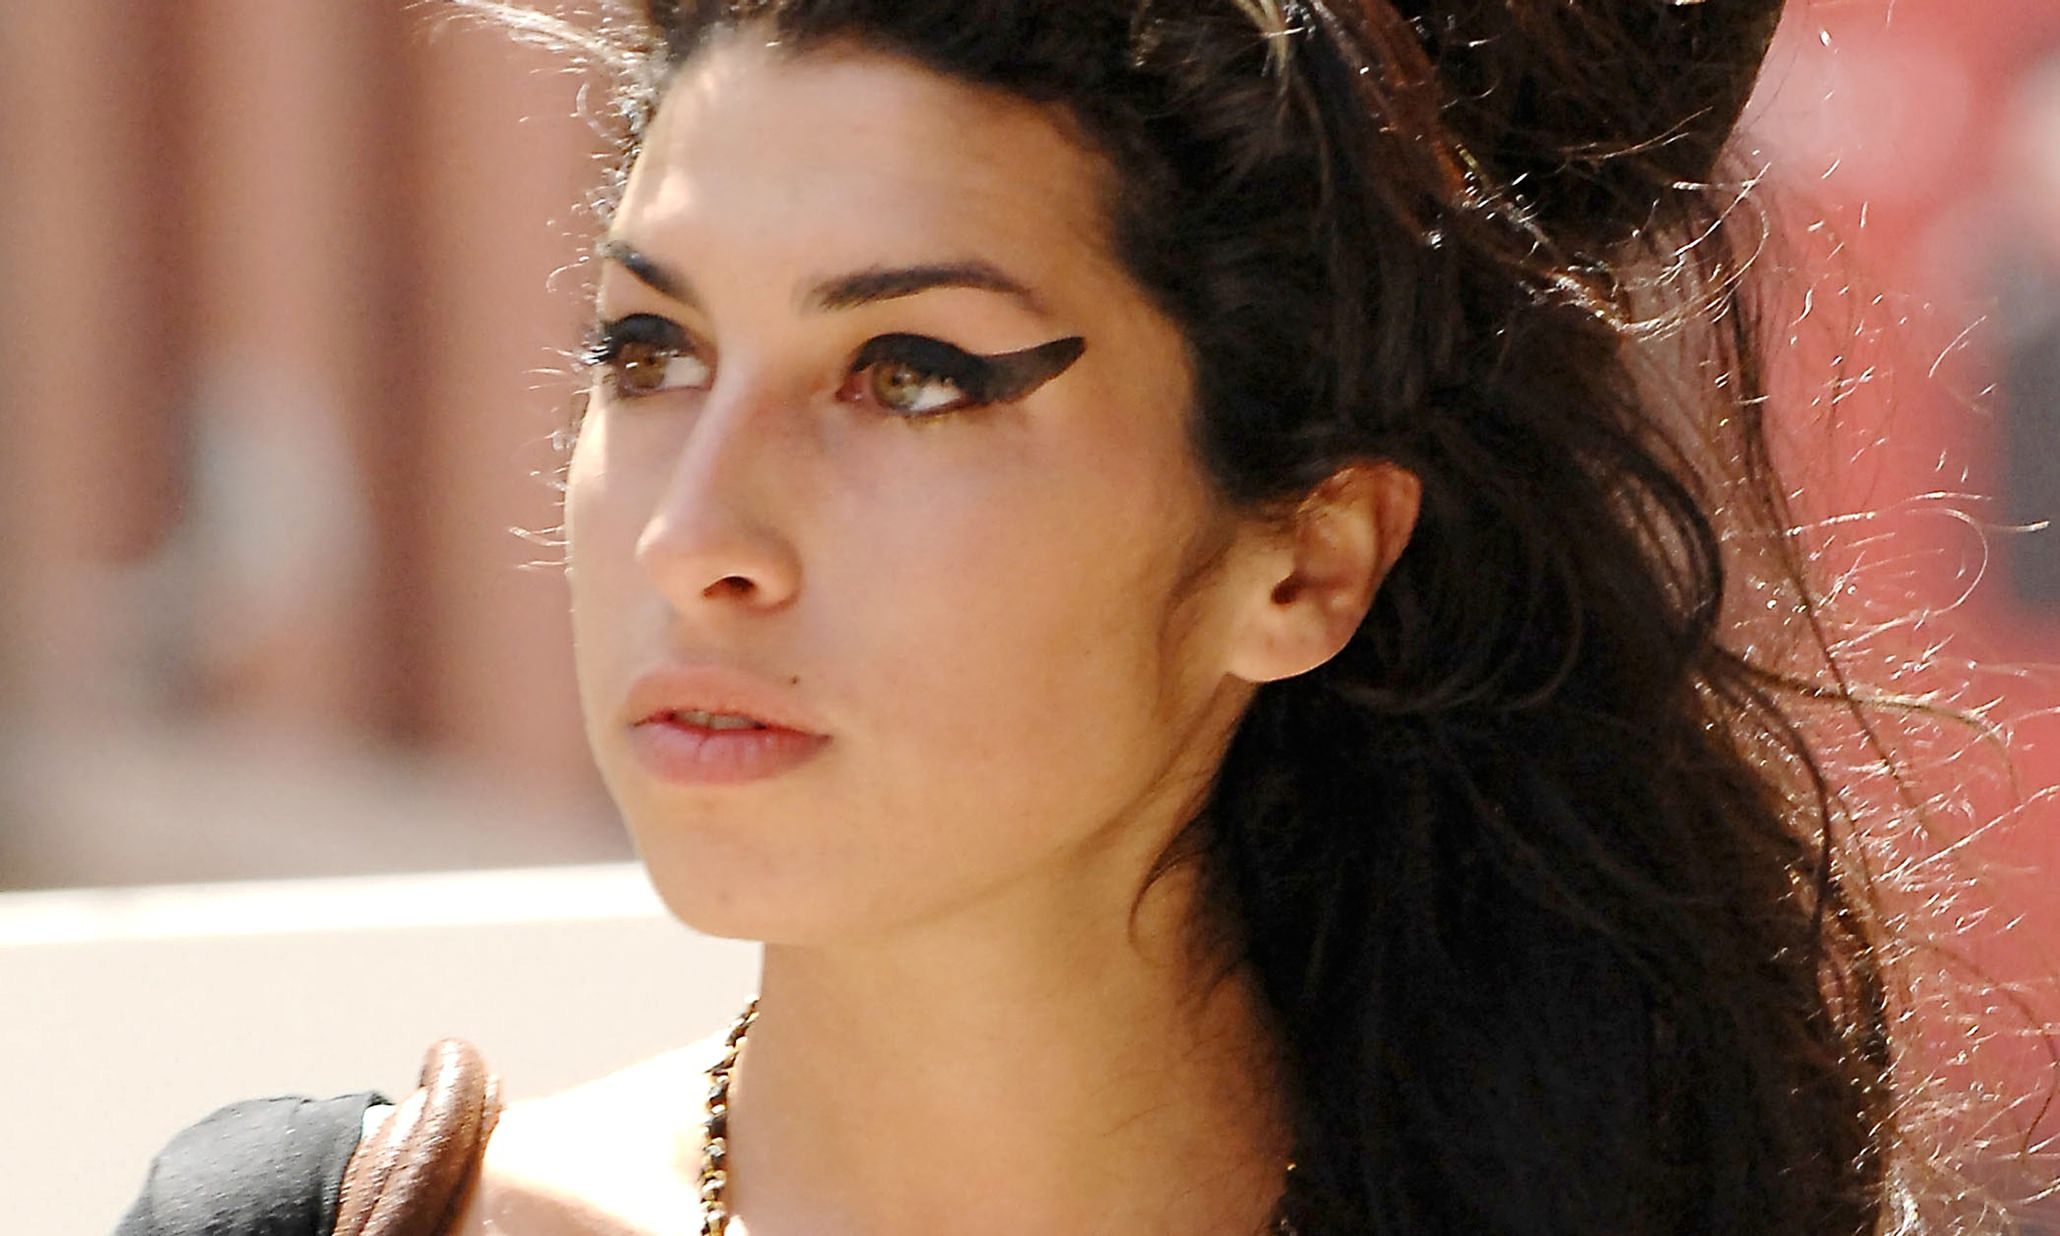 Amy Winehouse out and about in New York, America - 01 May 2007